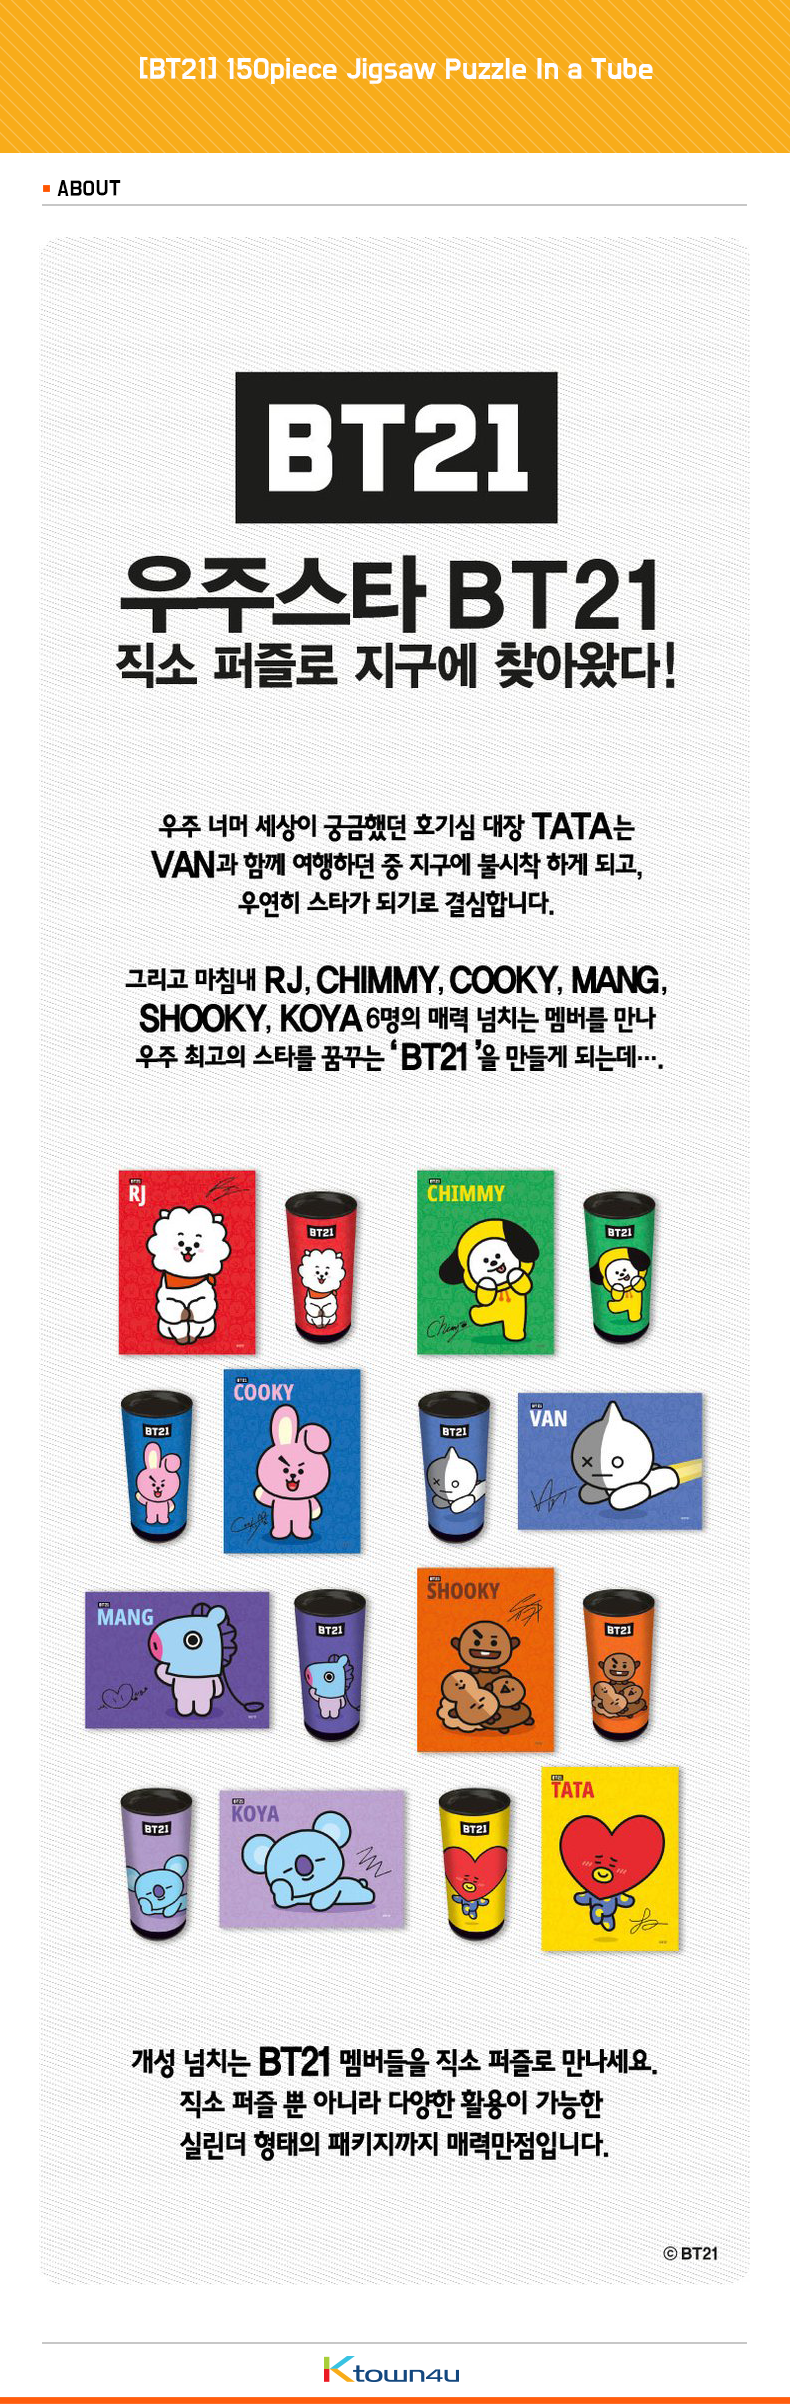 [BT21] 150piece Jigsaw Puzzle In a Tube